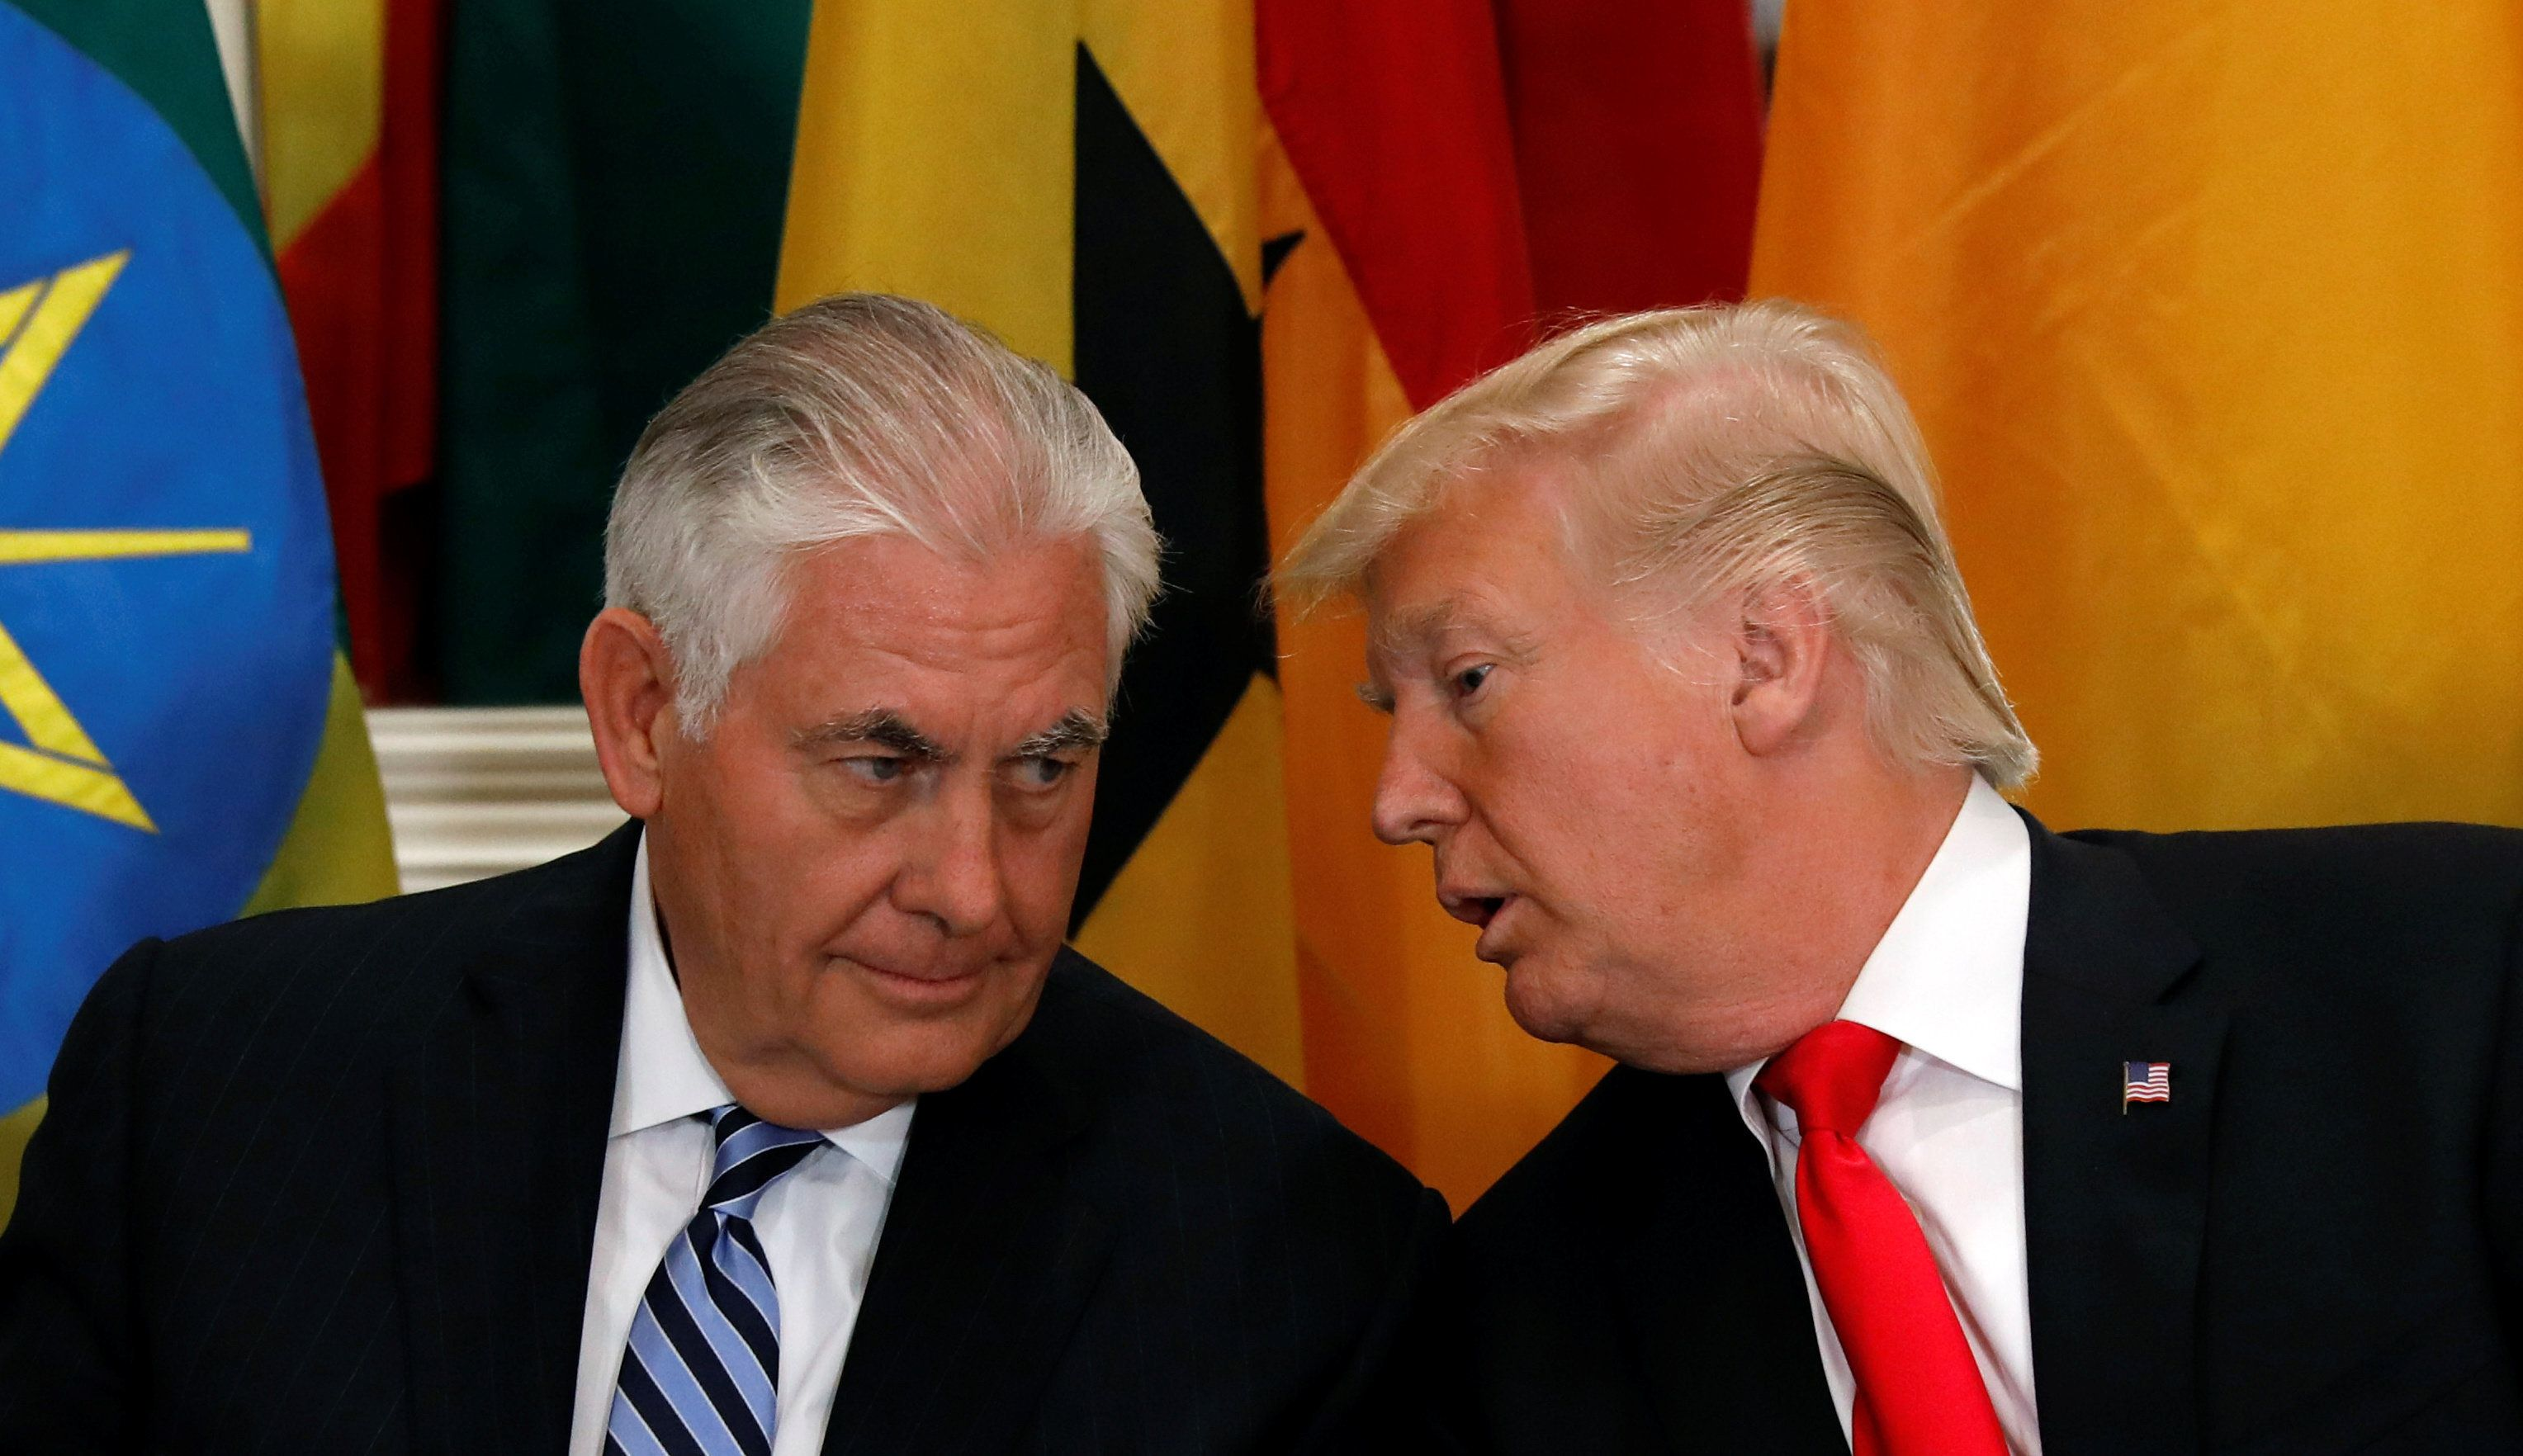 Tillerson Given Chance to Deny 'Moron' Comment, Doesn't Take It